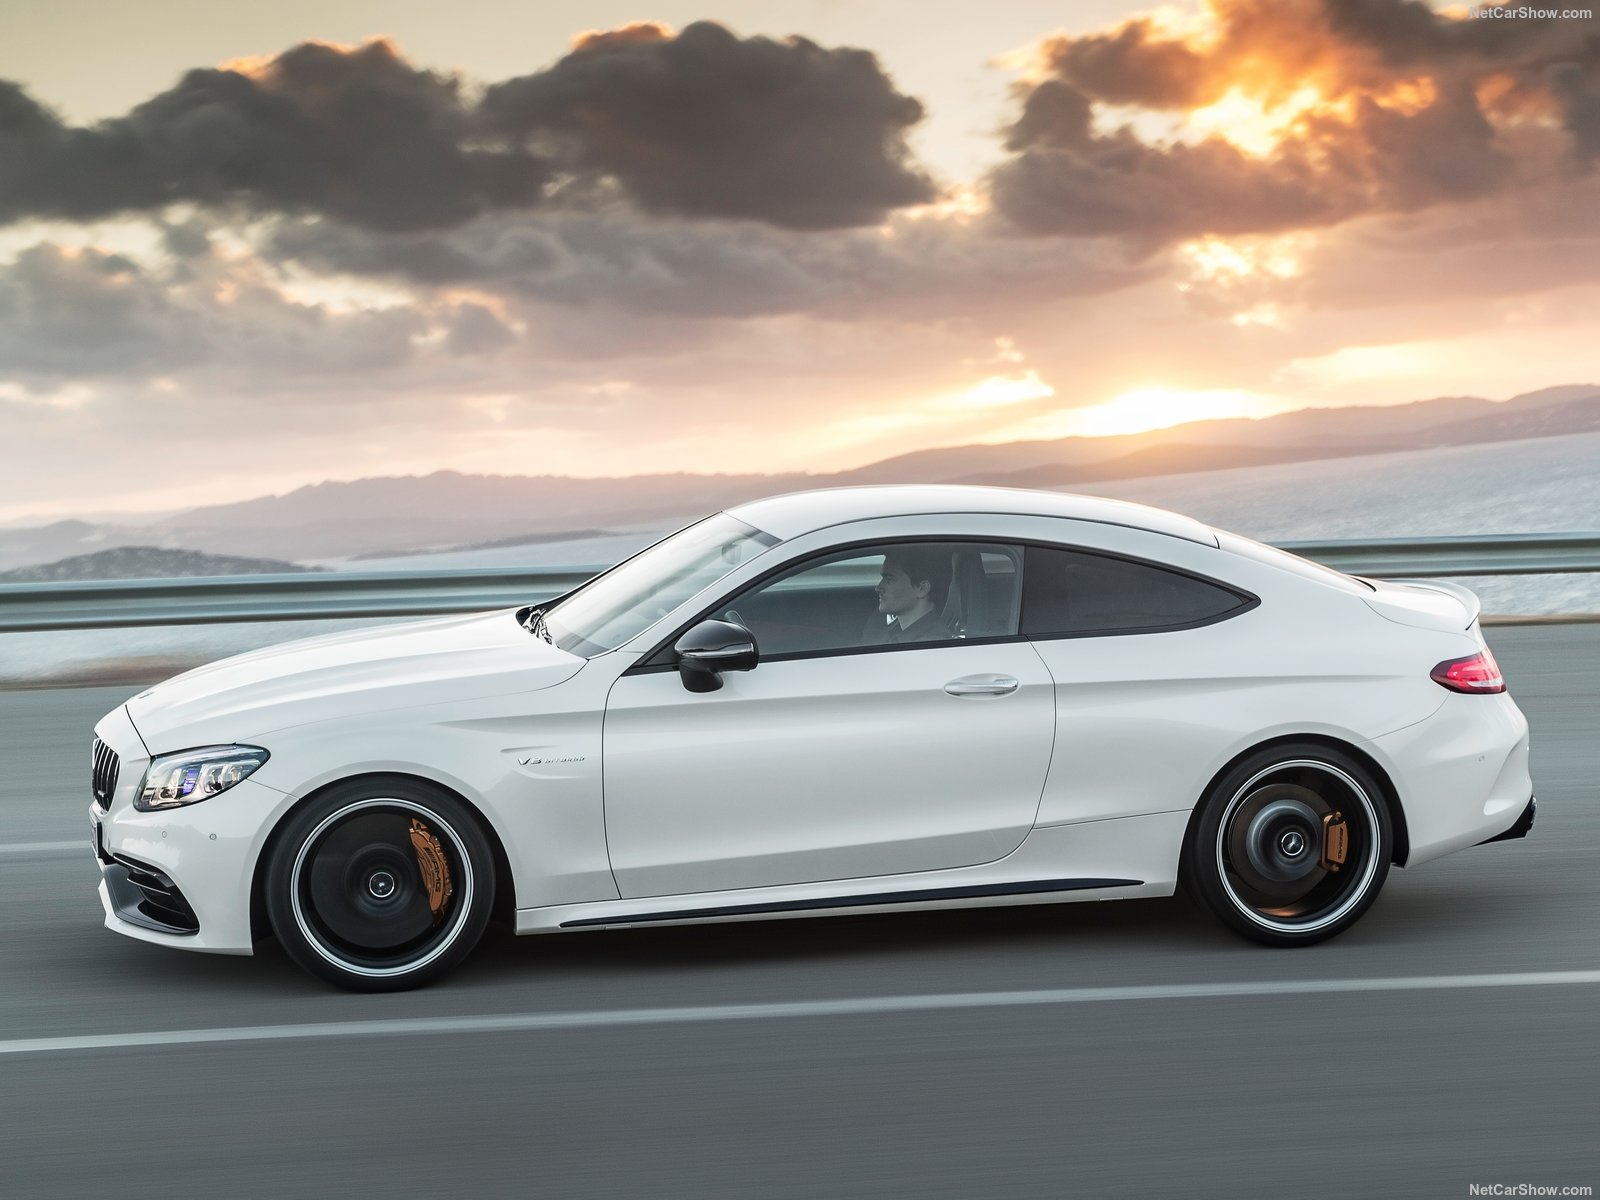 Mercedes-Benz C63 S AMG Coupe photo 187377